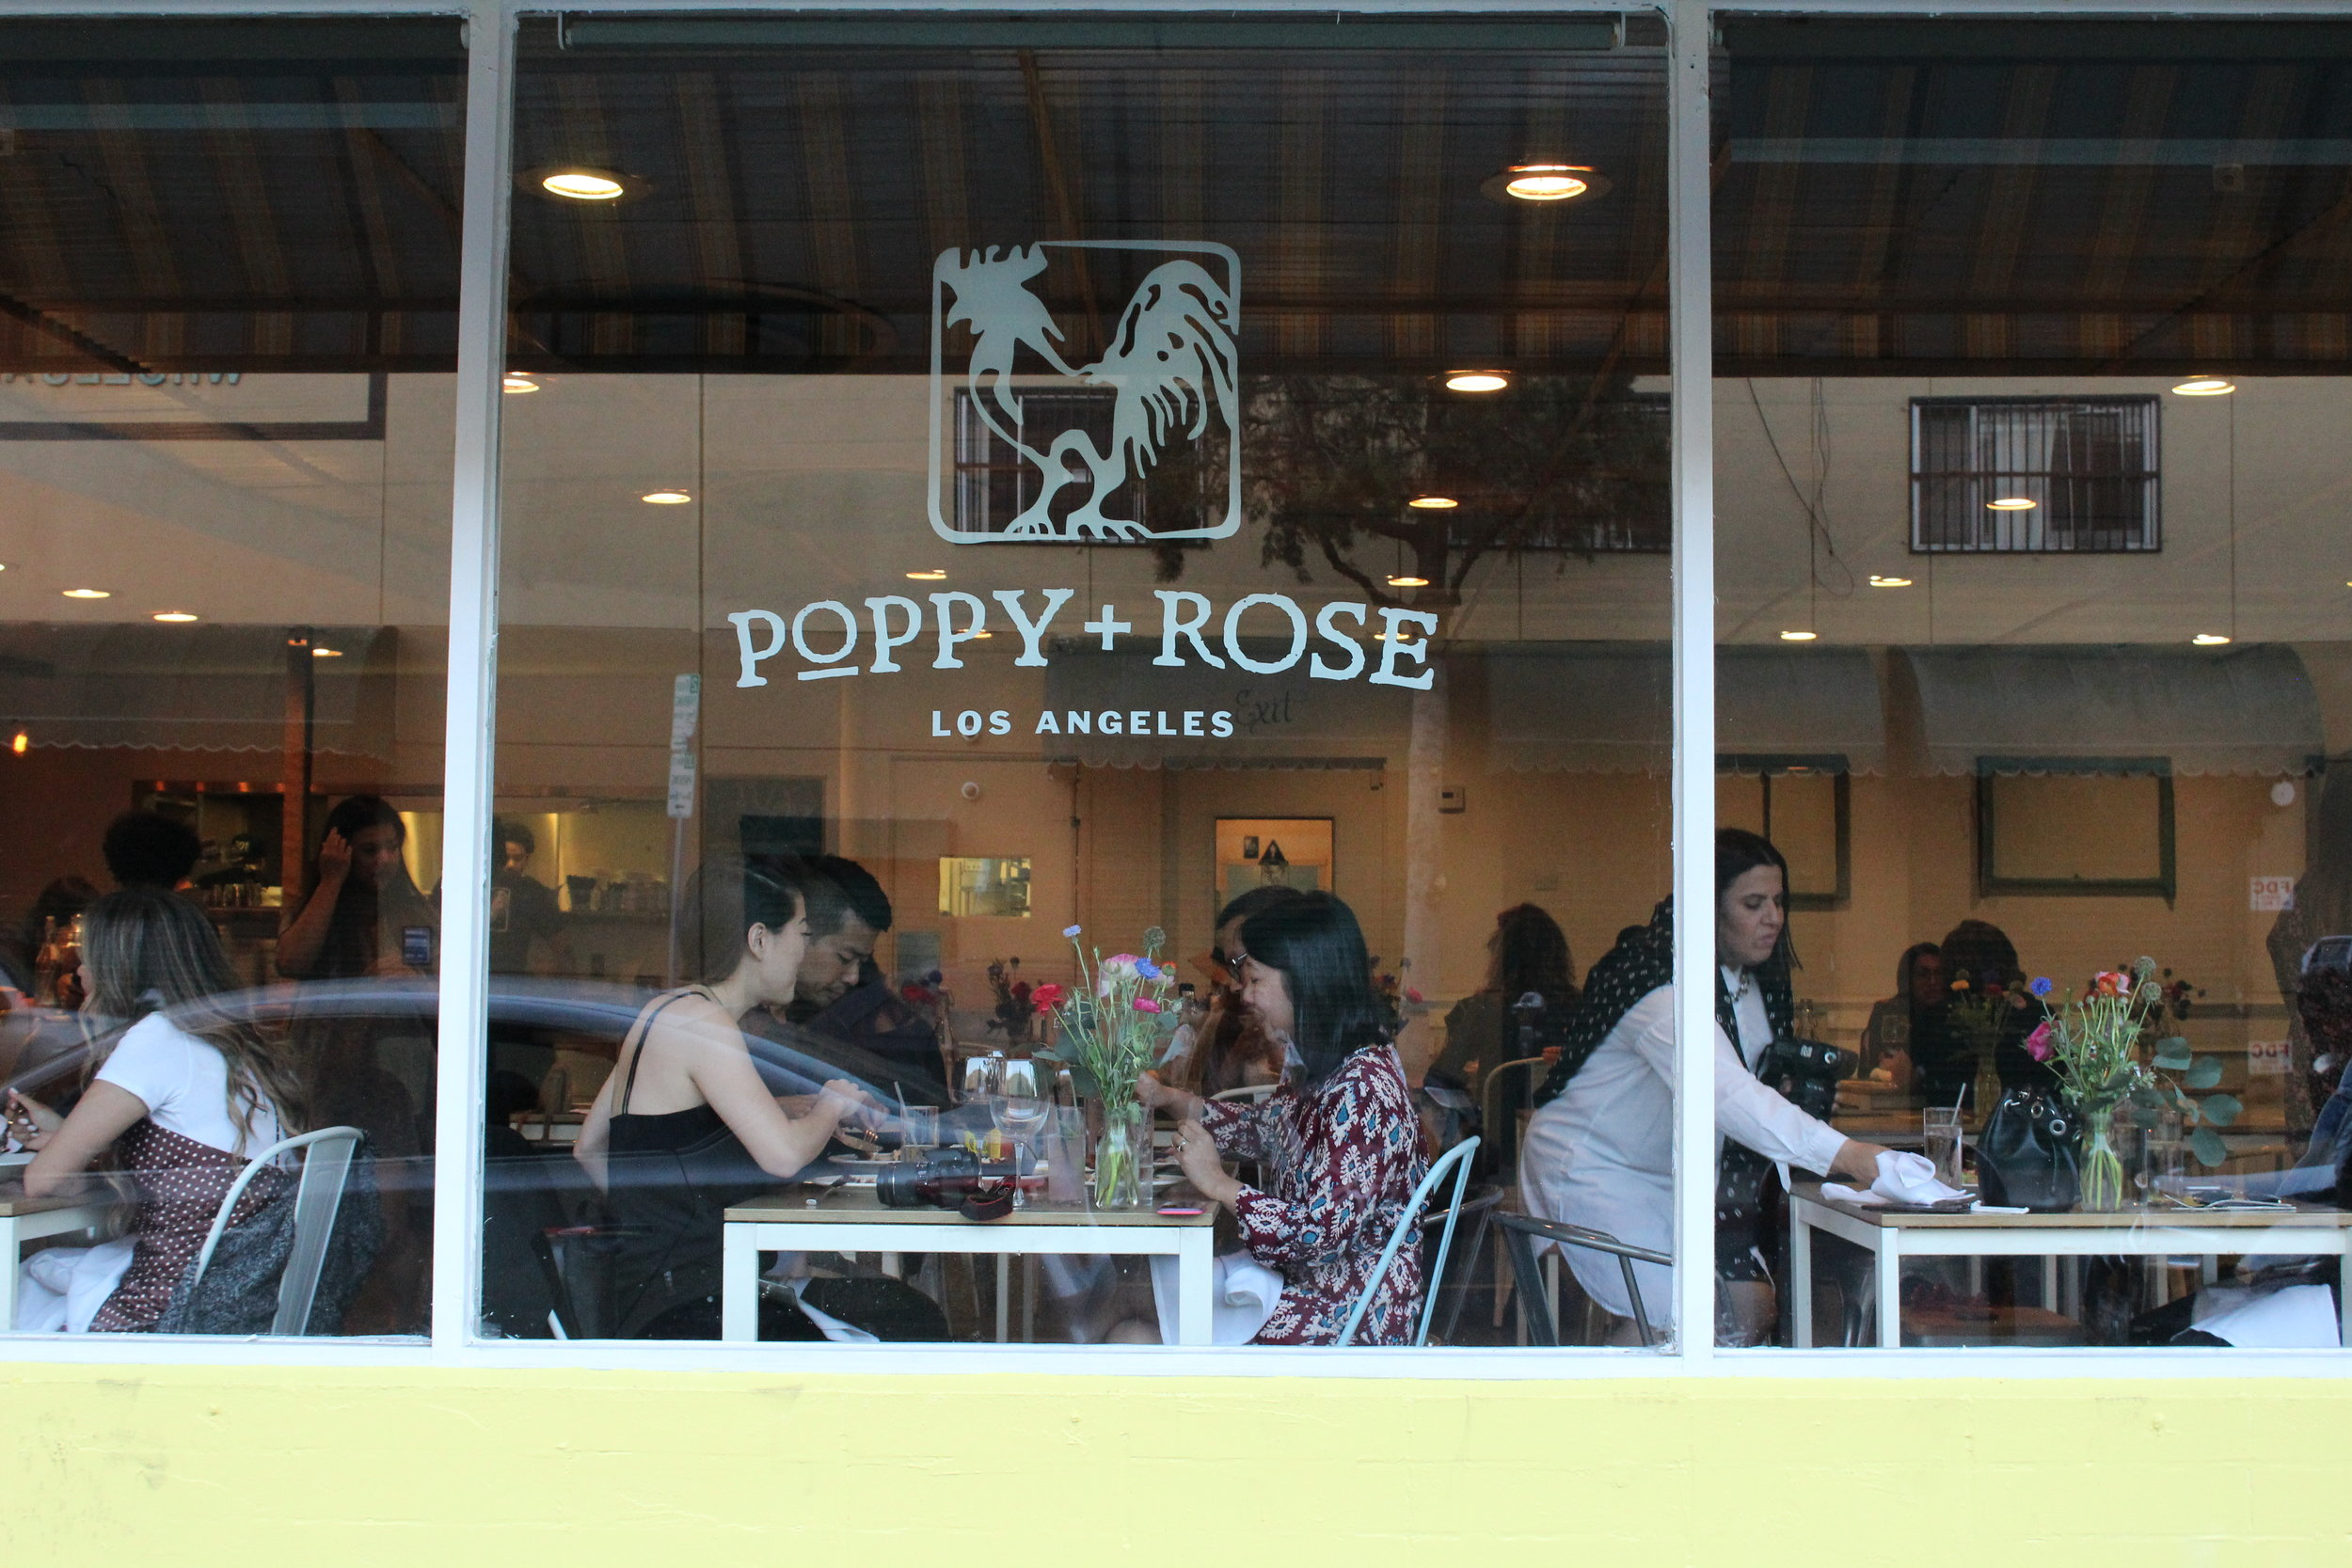 Poppy + Rose Restaurant Space